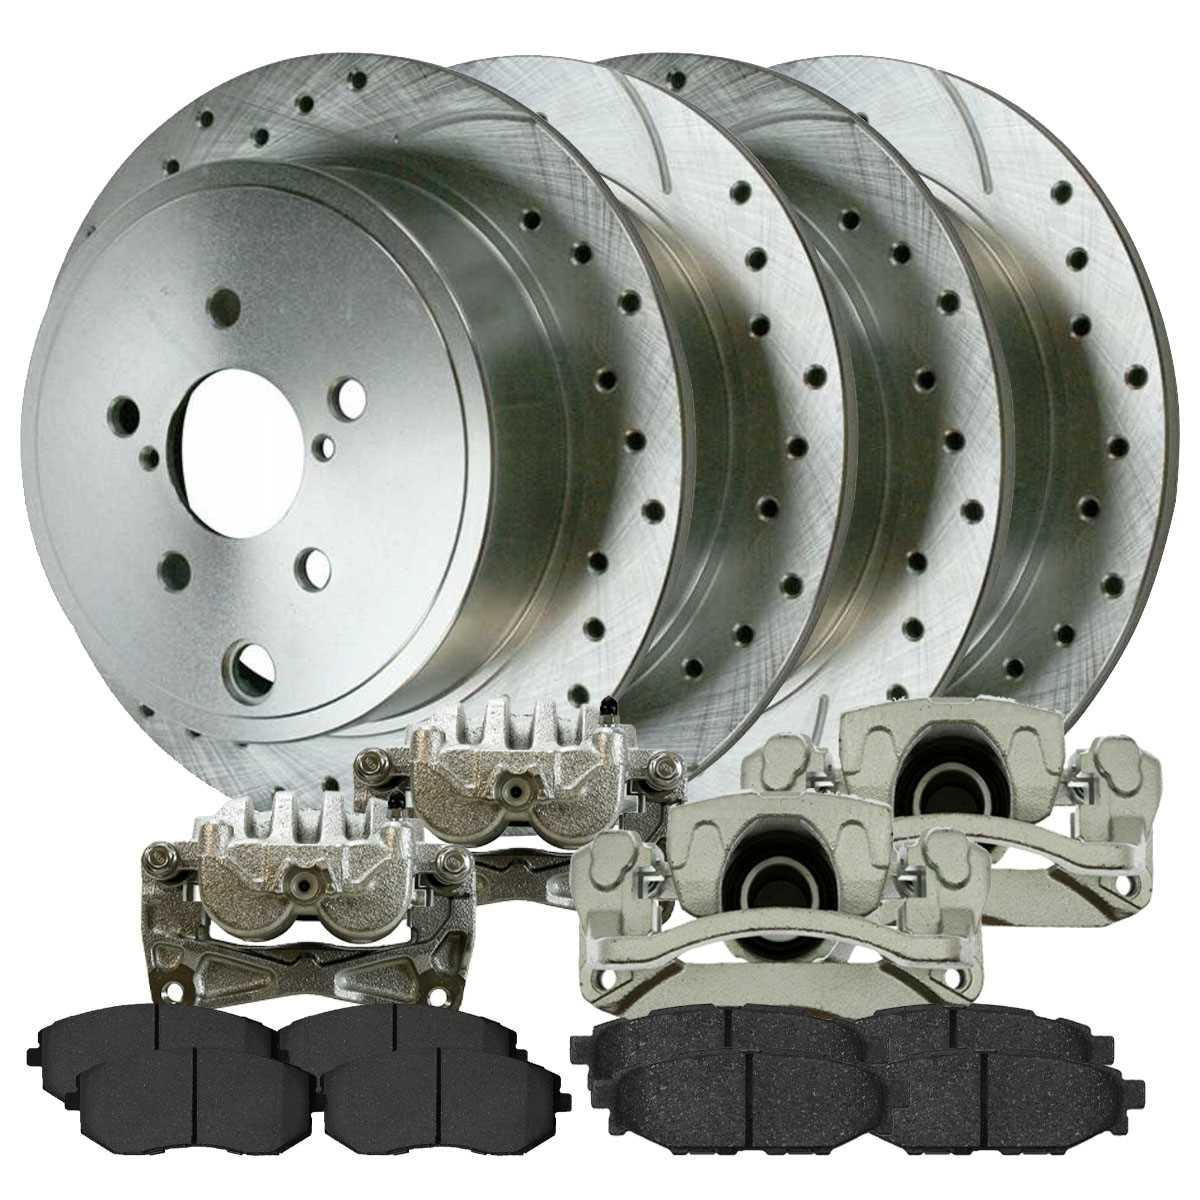 Rear Drilled Slotted Brake Rotors Calipers Metallic Pads for 13-14 GMC Yukon